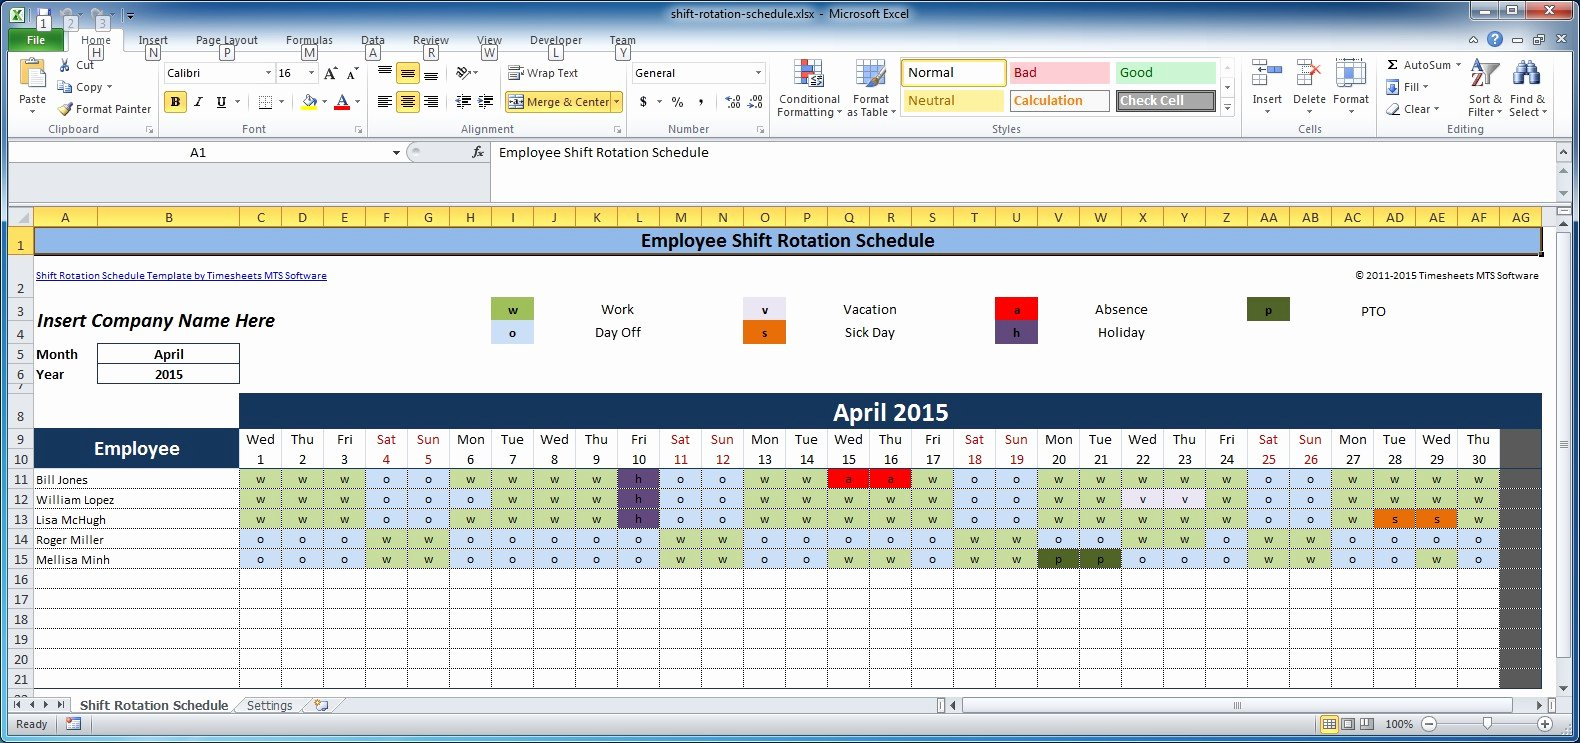 Weekly Schedule Templates Excel Inspirational Weekly Employee Shift Schedule Template Excel